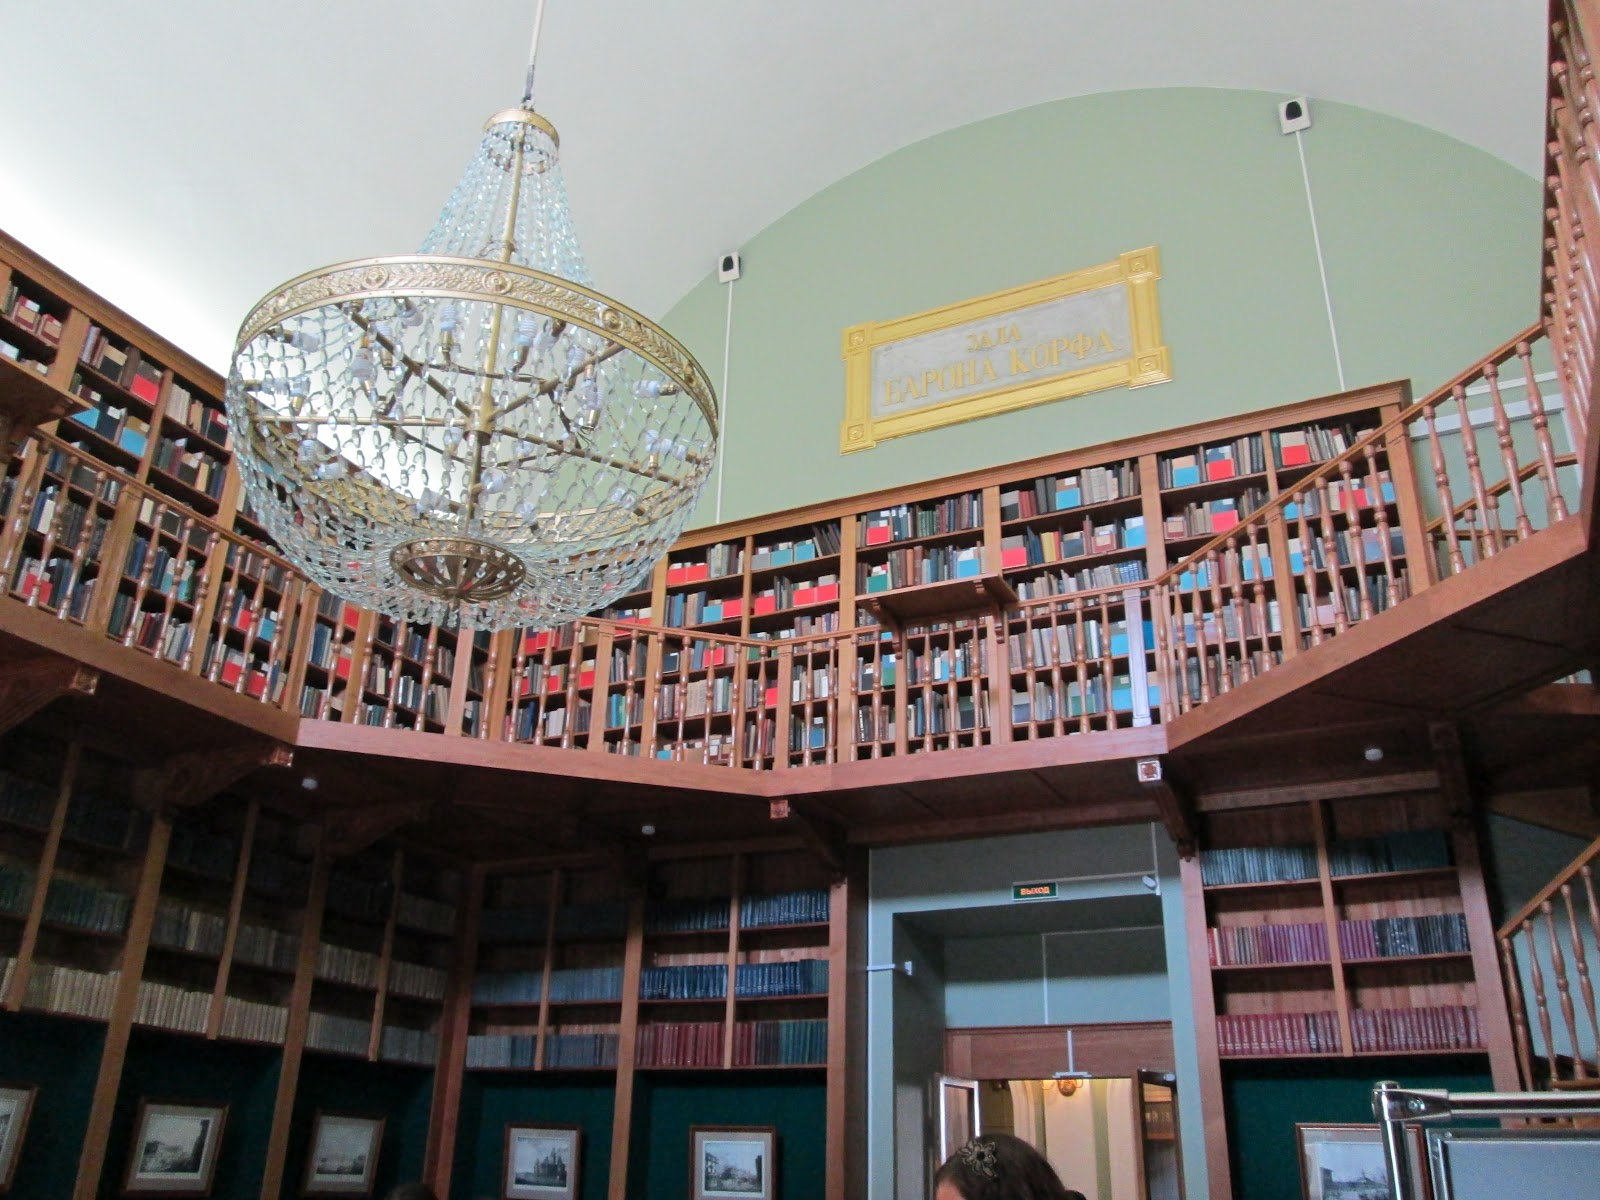 Russian National Library St. Petersburg, Libraries and Cultural Heritage Institutions of St. Petersburg ...